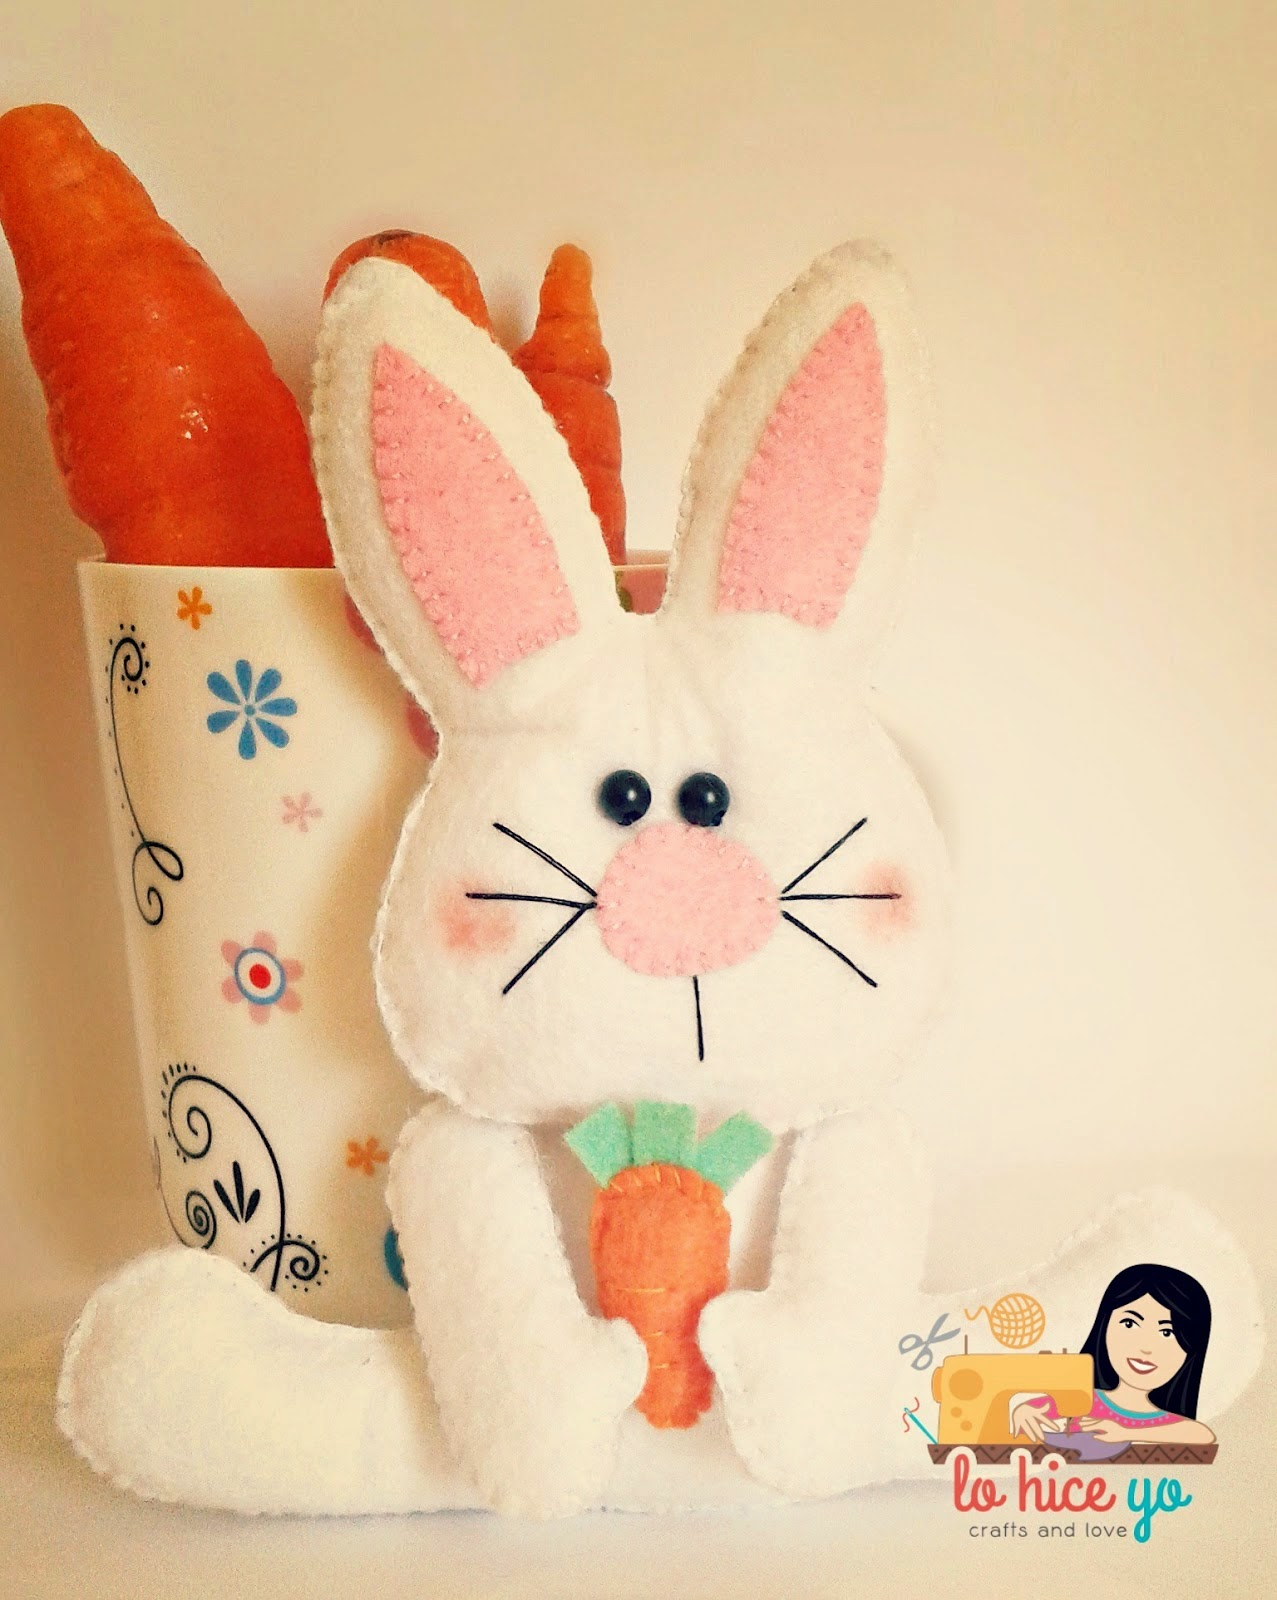 https://www.etsy.com/listing/186771555/felt-bunny-plush?ref=shop_home_active_1